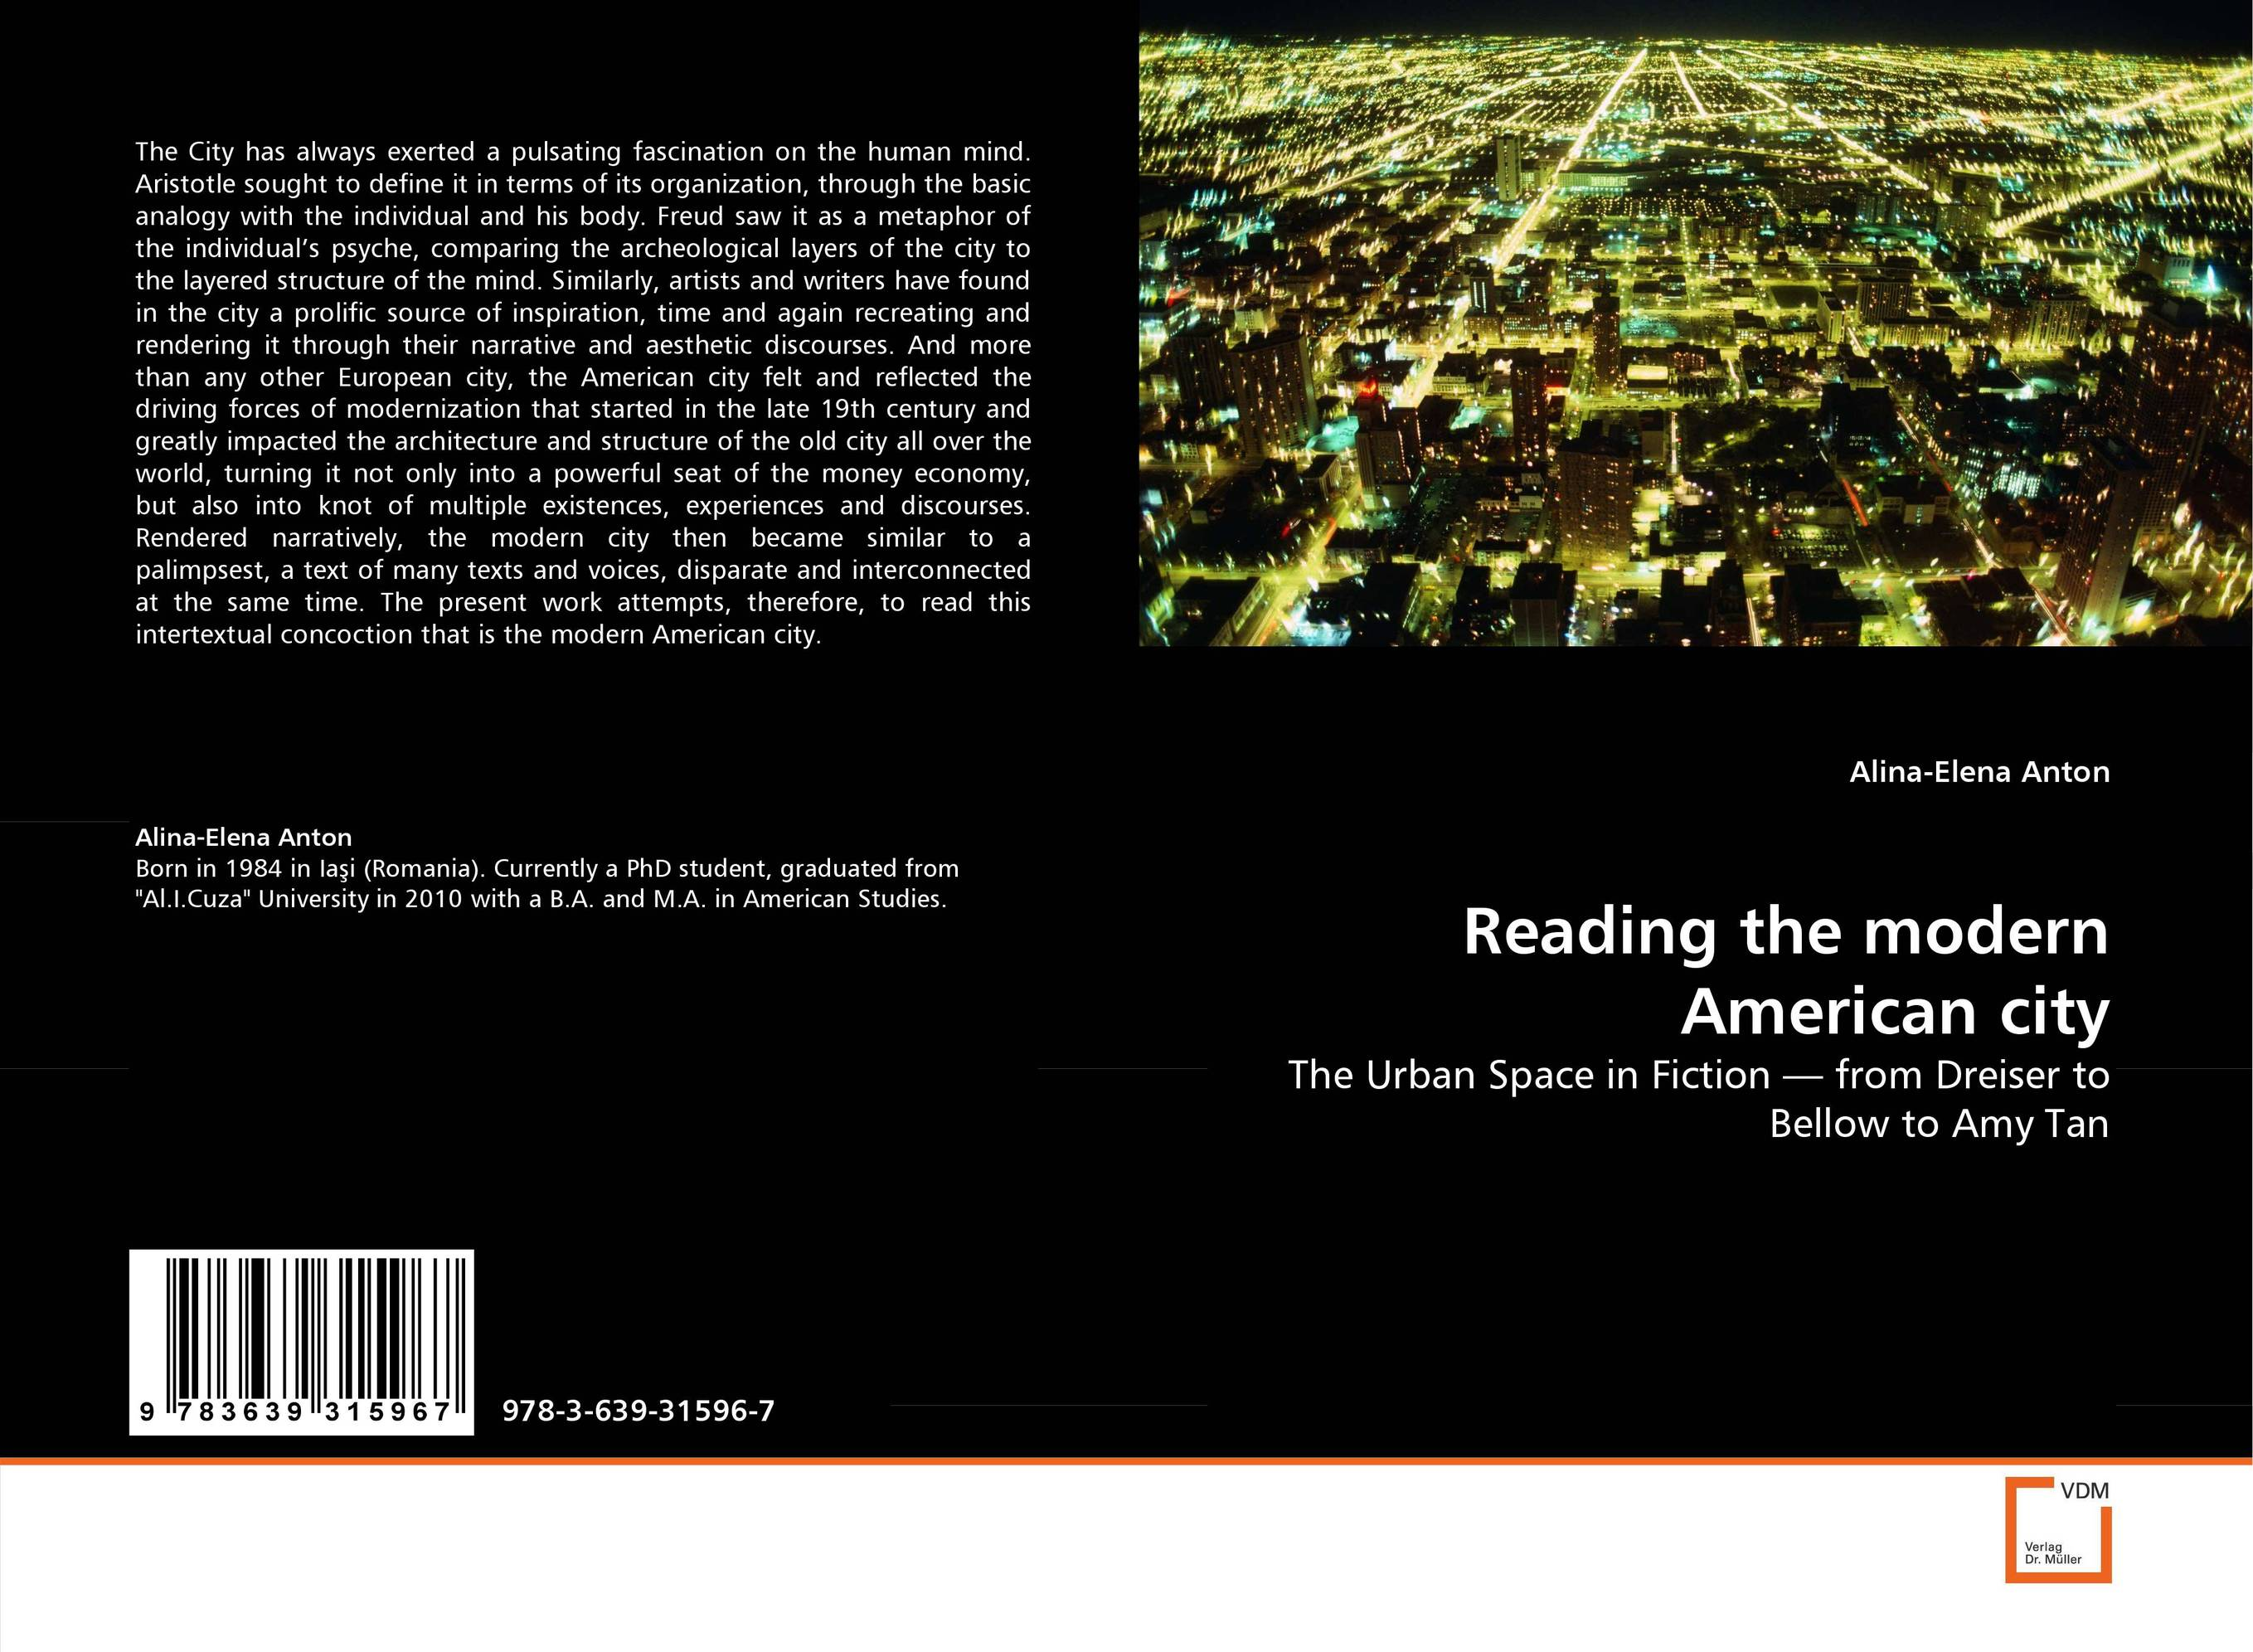 Reading the modern American city the city always wins